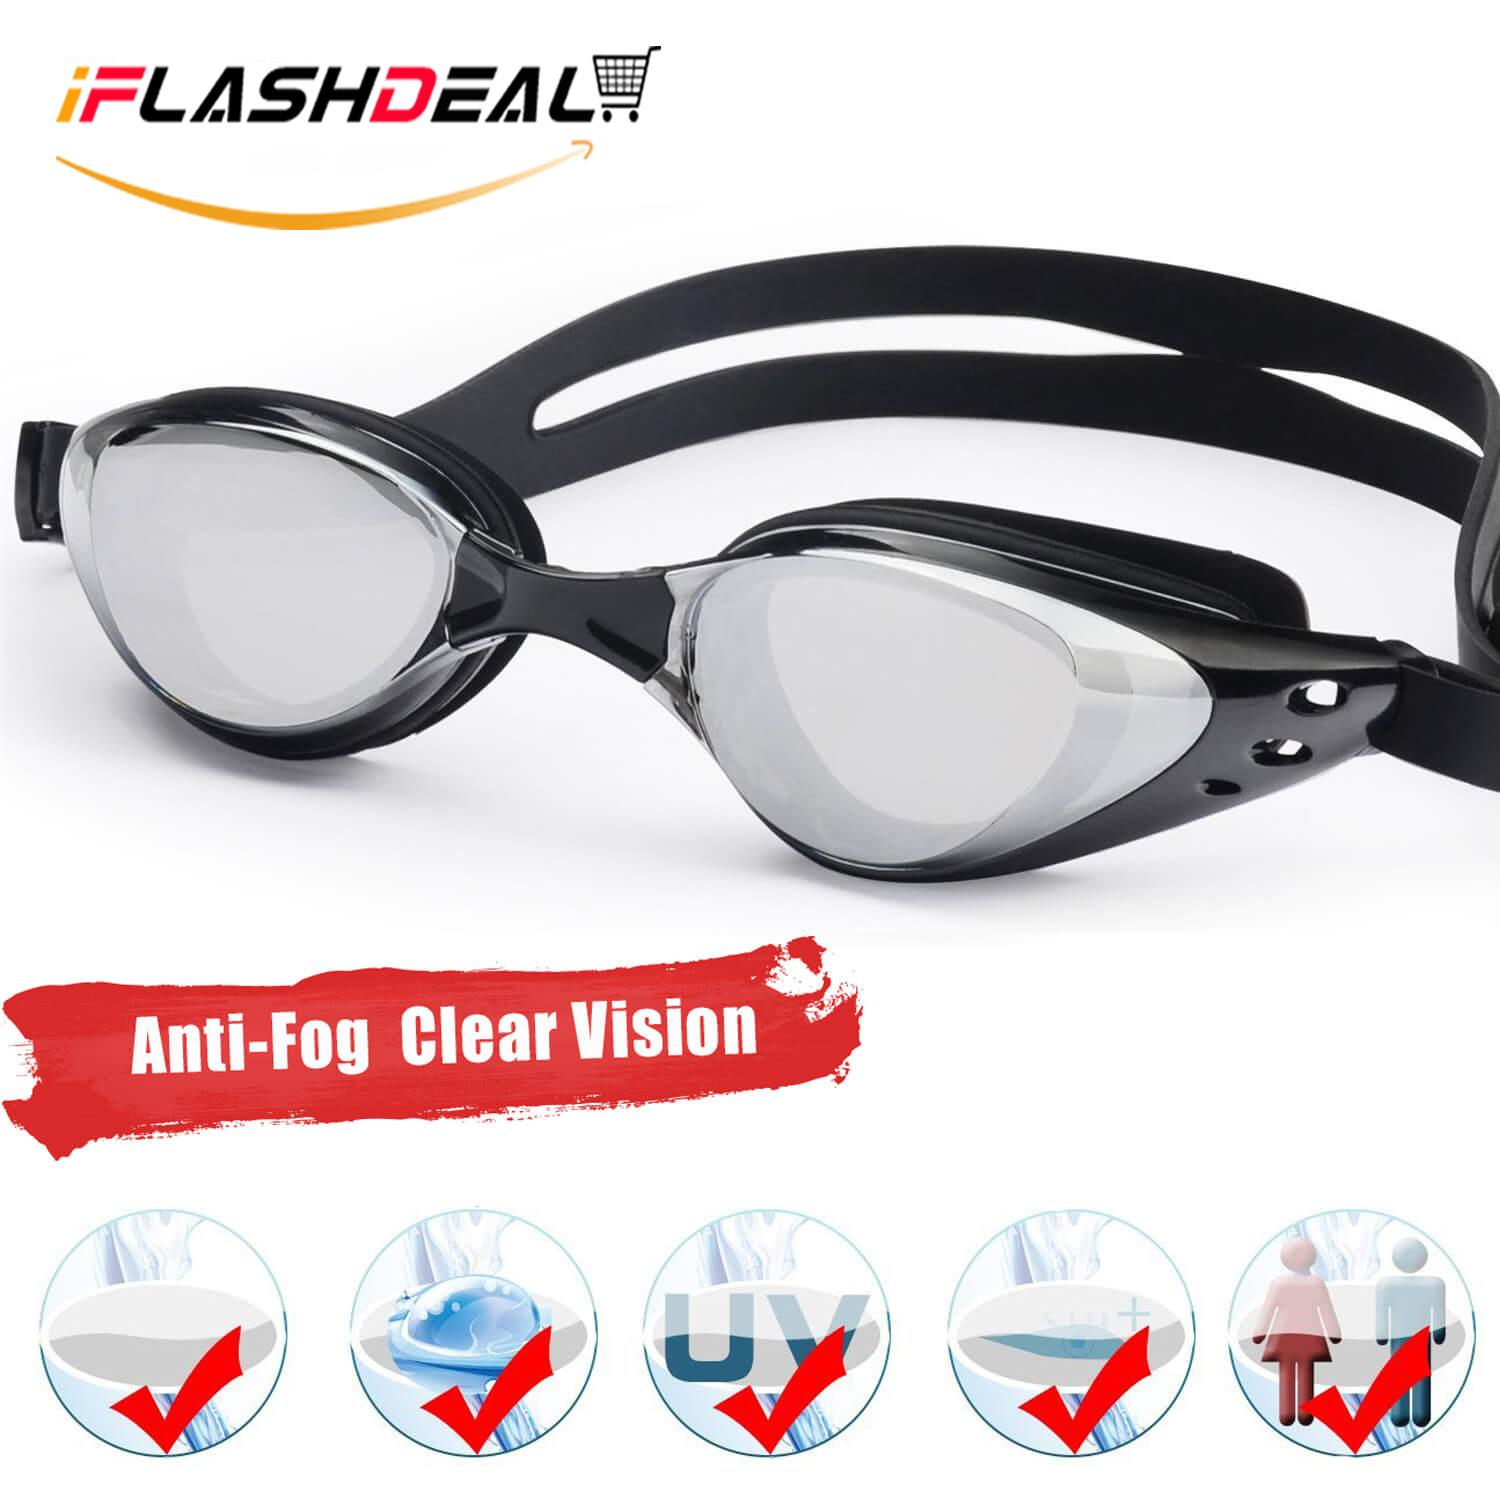 0bb9ee11a85e iFlashDeal Swimming Goggles Swim Goggles UV 400 Protection Anti Fog No  Leaking Wide View Pool Goggles